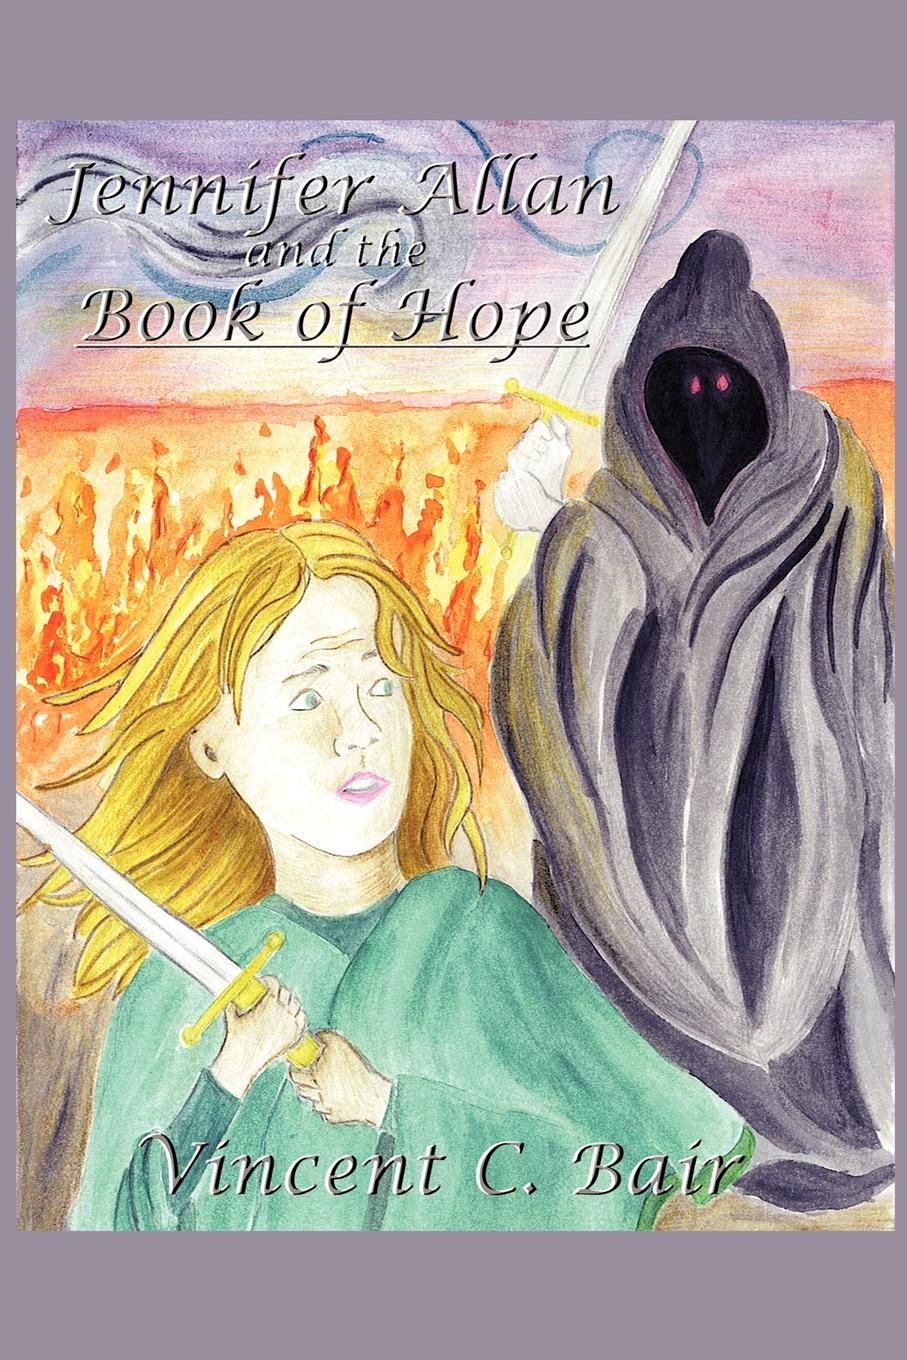 лучшая цена Vincent C. Bair Jennifer Allan and the Book of Hope